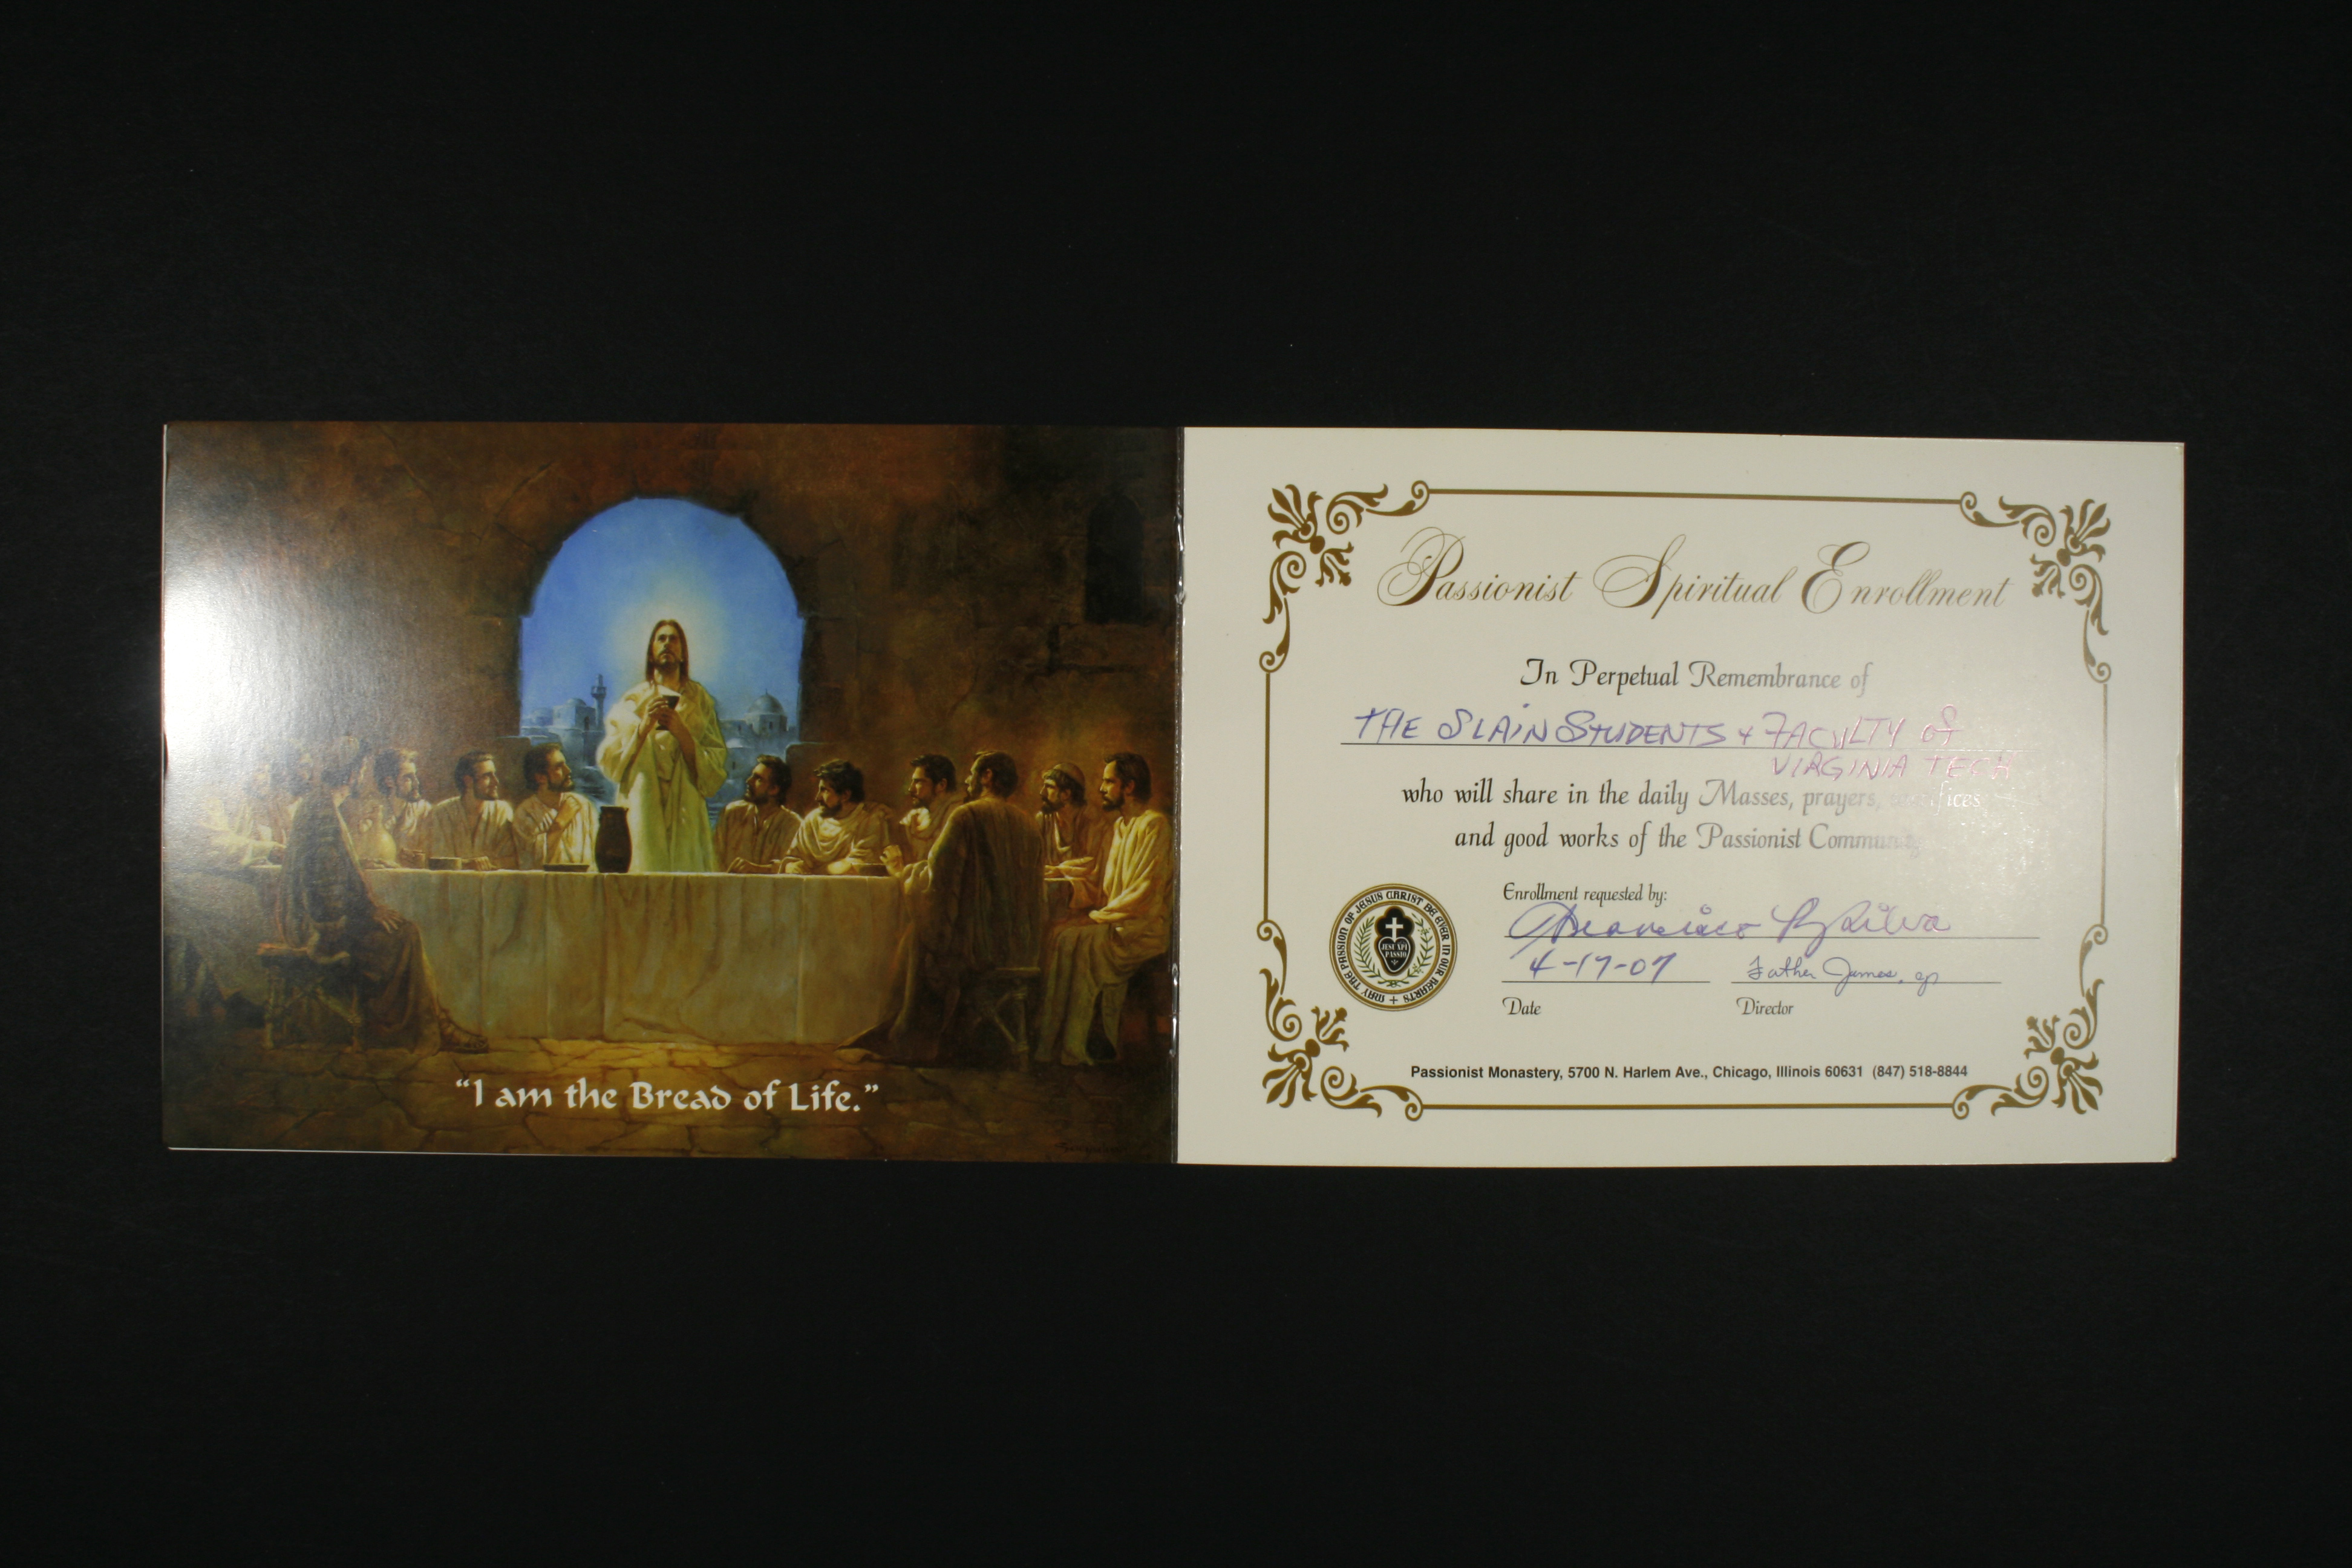 Mass Card from Passionist Monastery